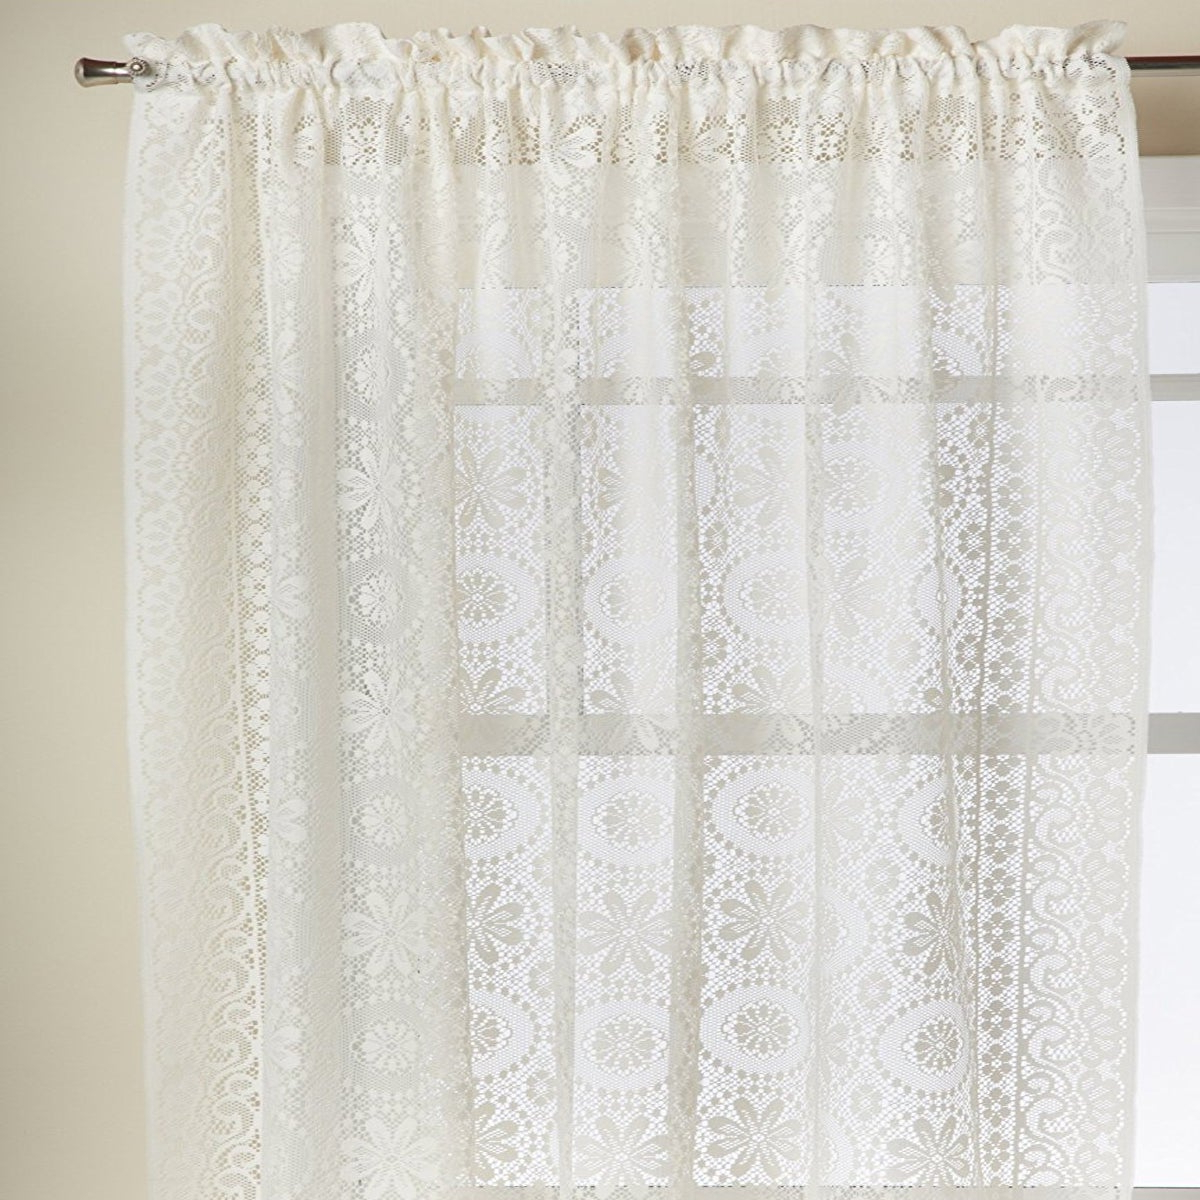 Luxurious Old World Style Lace Window Curtain Panels Regarding Most Recent Luxurious Old World Style Lace Window Curtain Panel (Gallery 3 of 20)